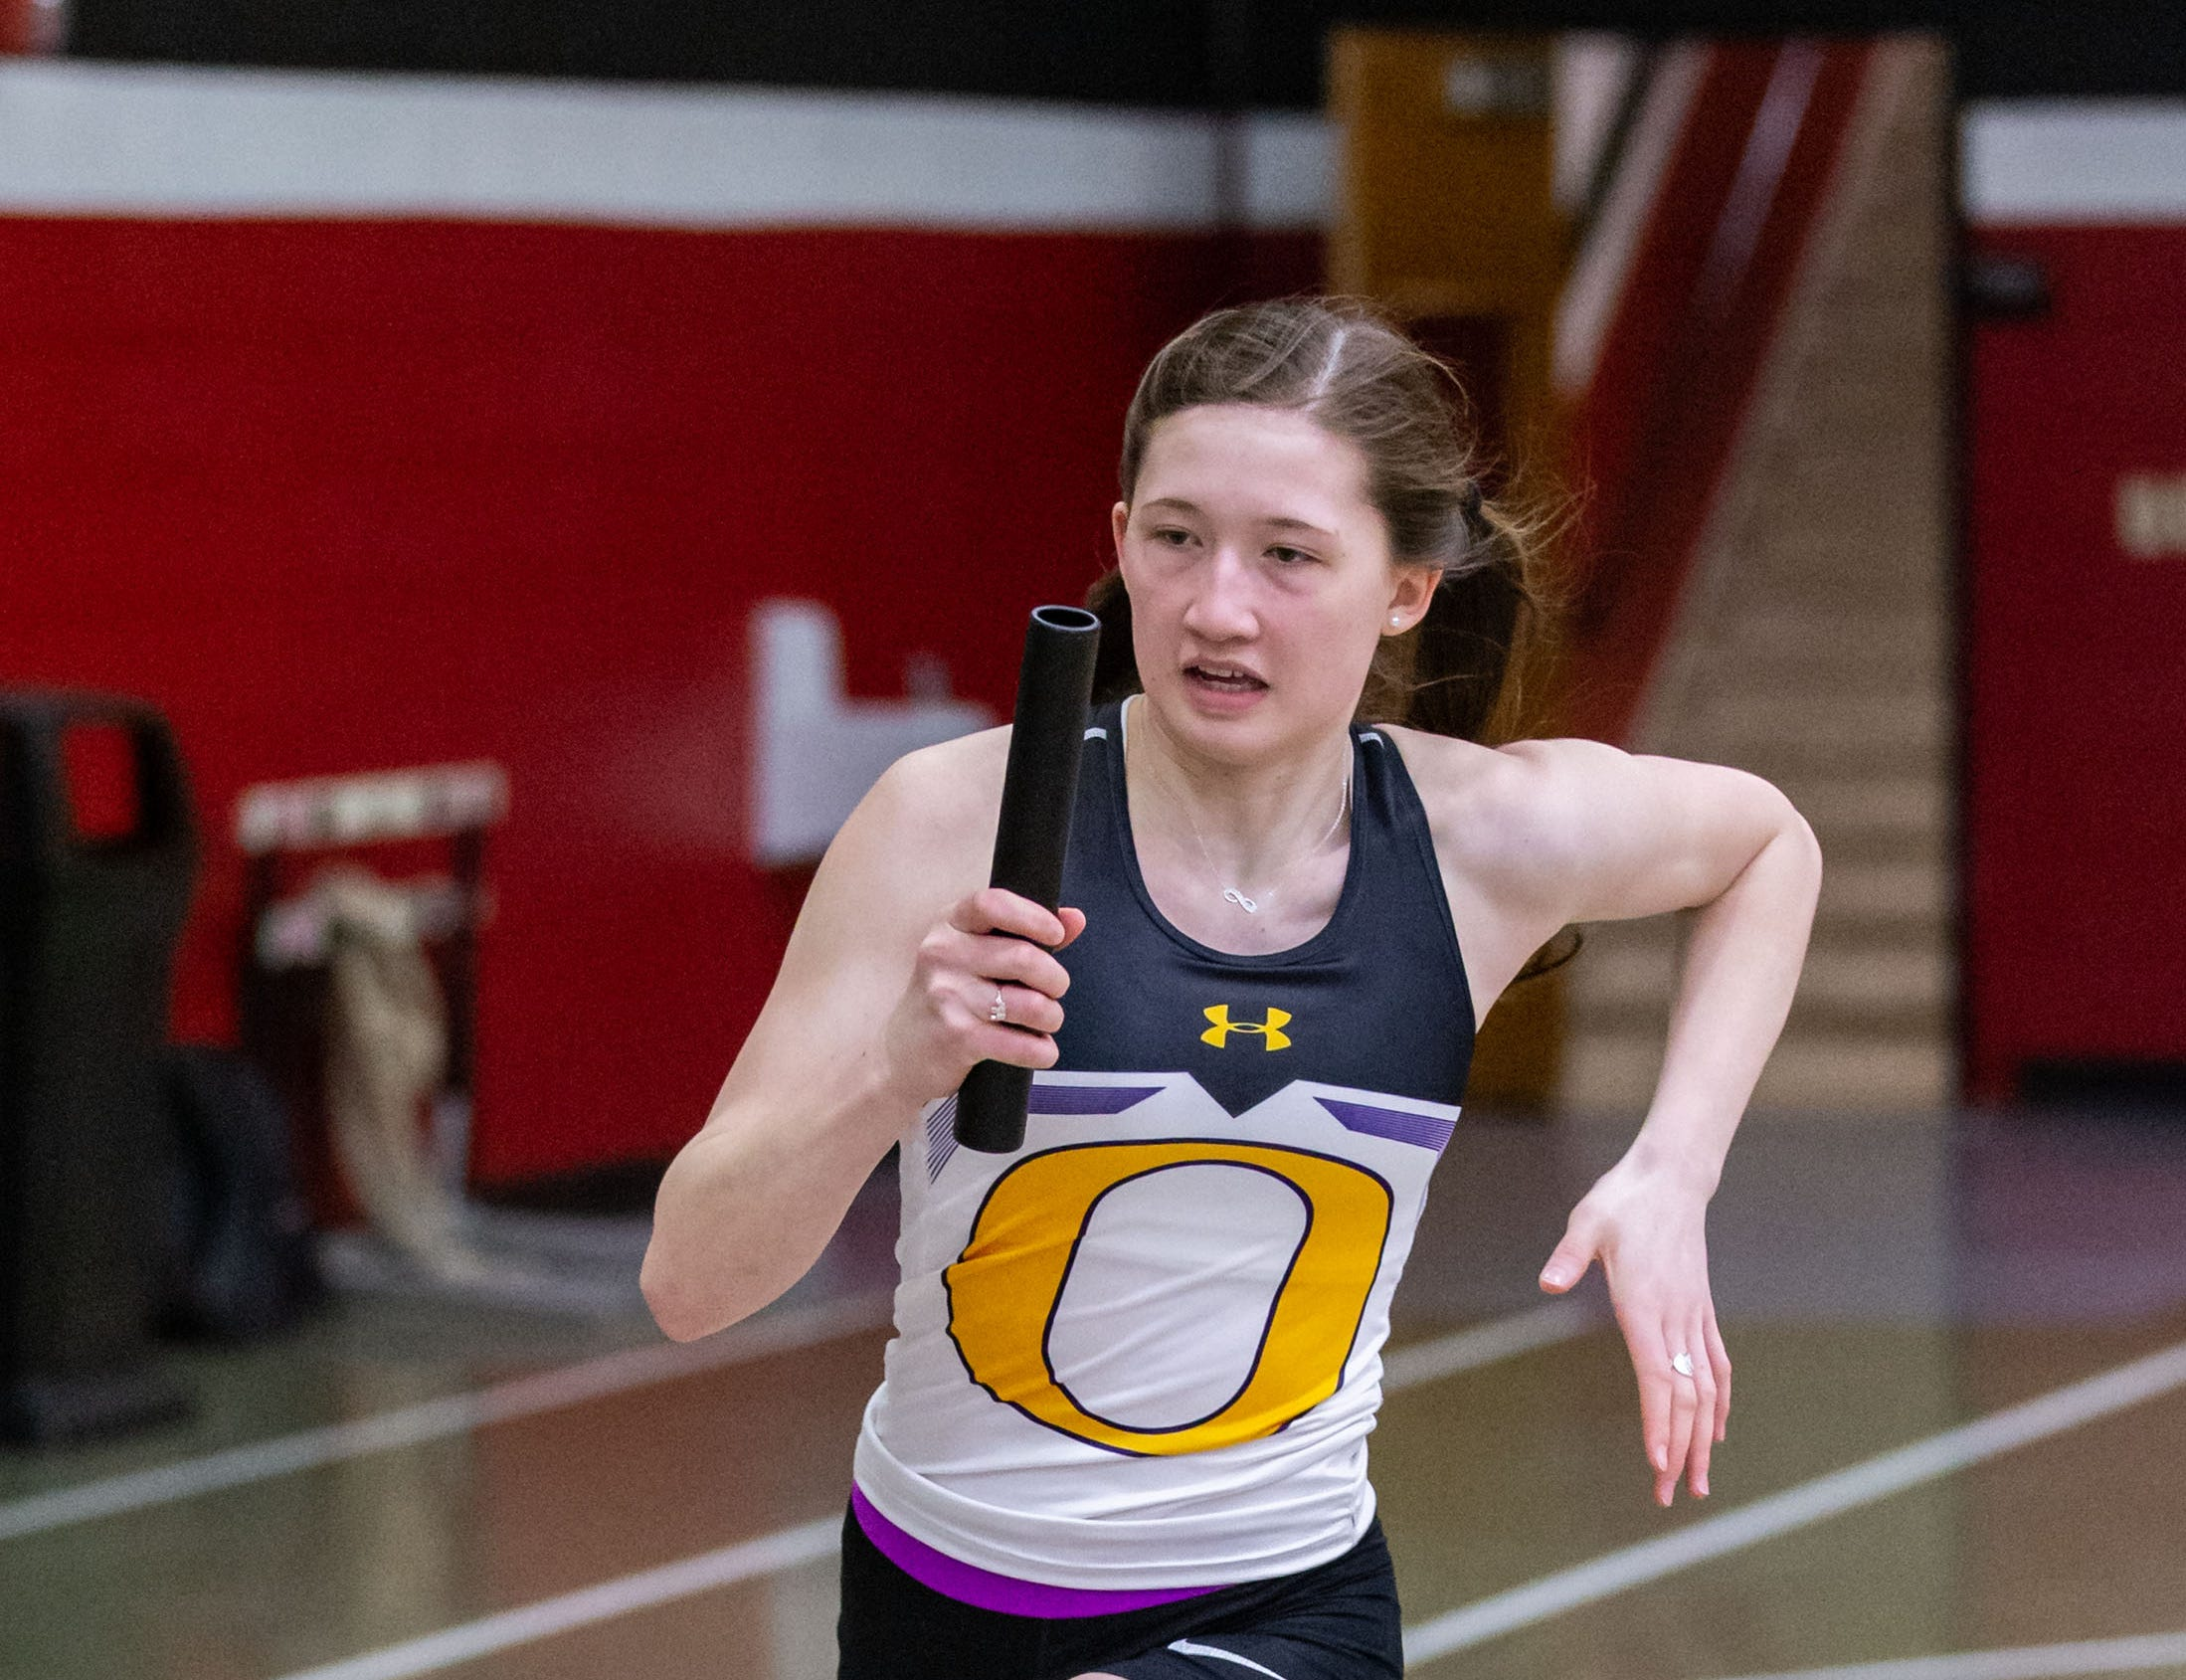 Oconomowoc's Claire Cotey competes in the sprint medley relay at the Peter Rempe Cardinal Relays hosted by Waukesha South on Thursday, March 21, 2019.